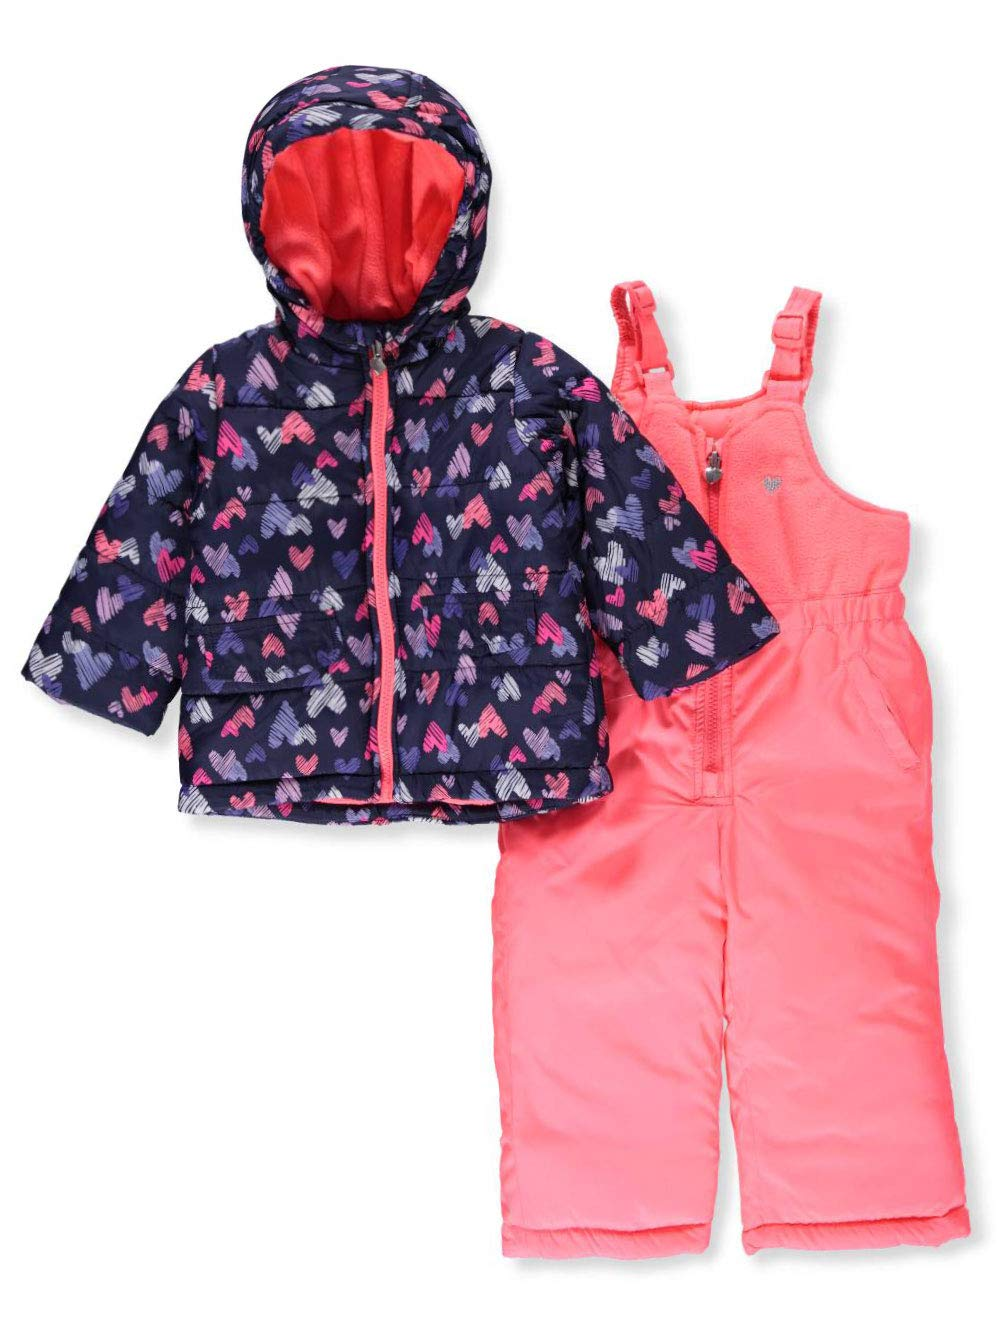 Amerex Carter's Baby Girls' 2-Piece Snowsuit